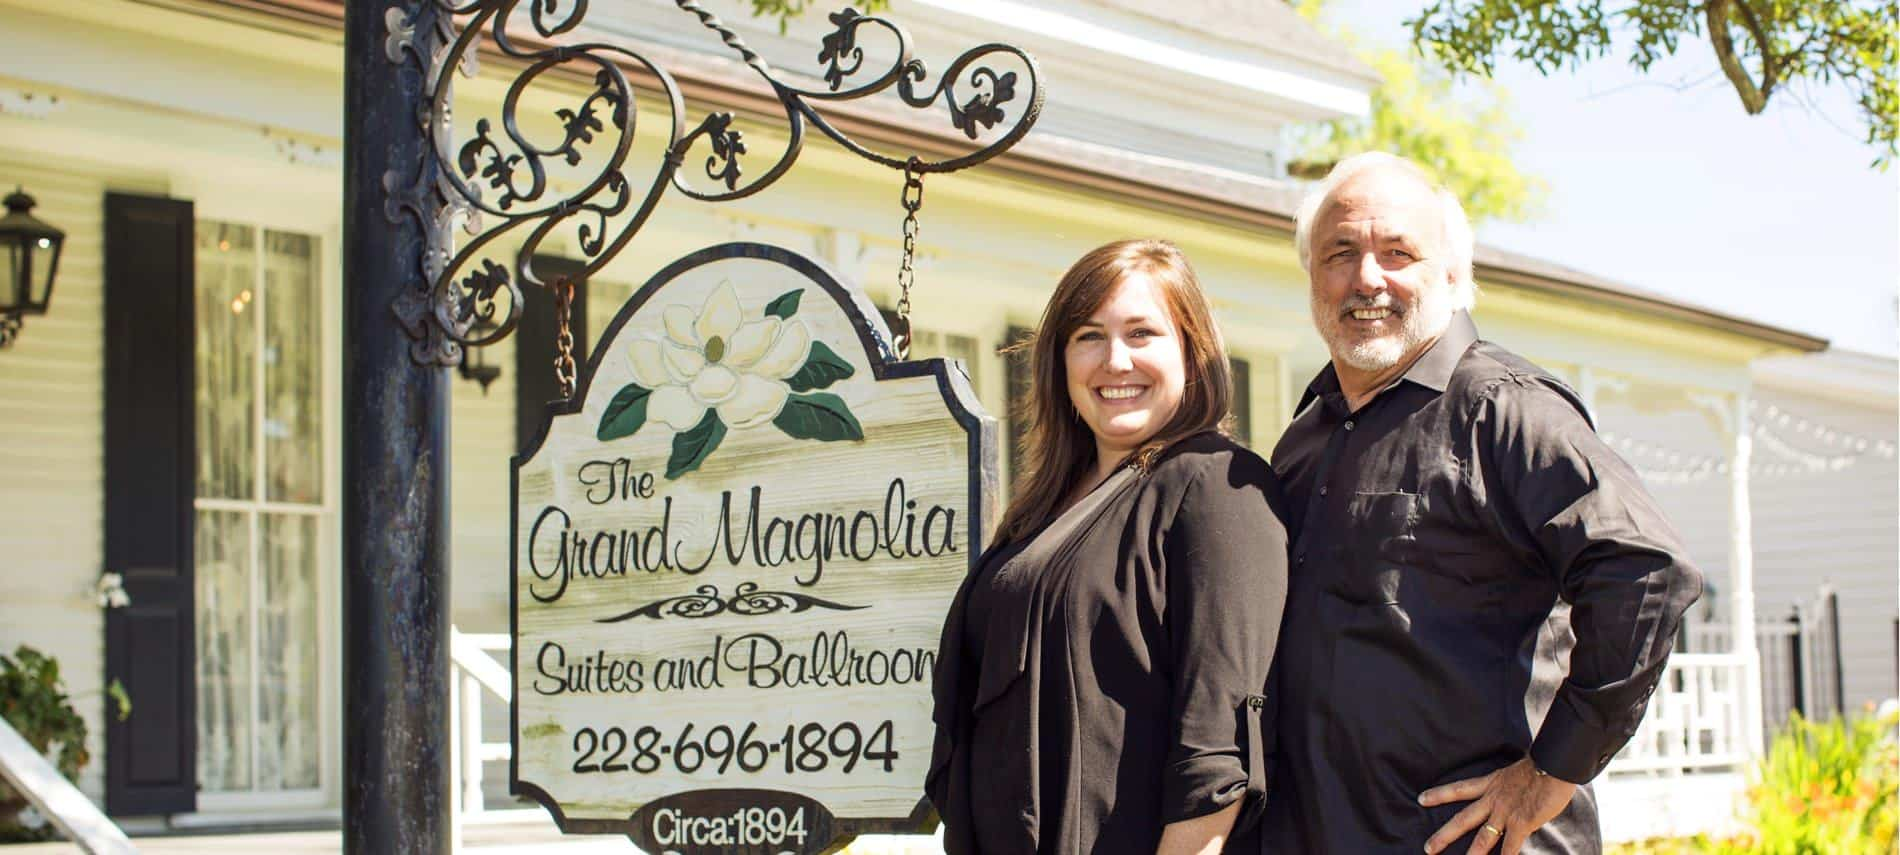 Owners, a man and woman, smiling outside standing next to the a hanging sign that says: The Grand Magnolia Suites and Ballroom 228-696-1894 Circa 1894